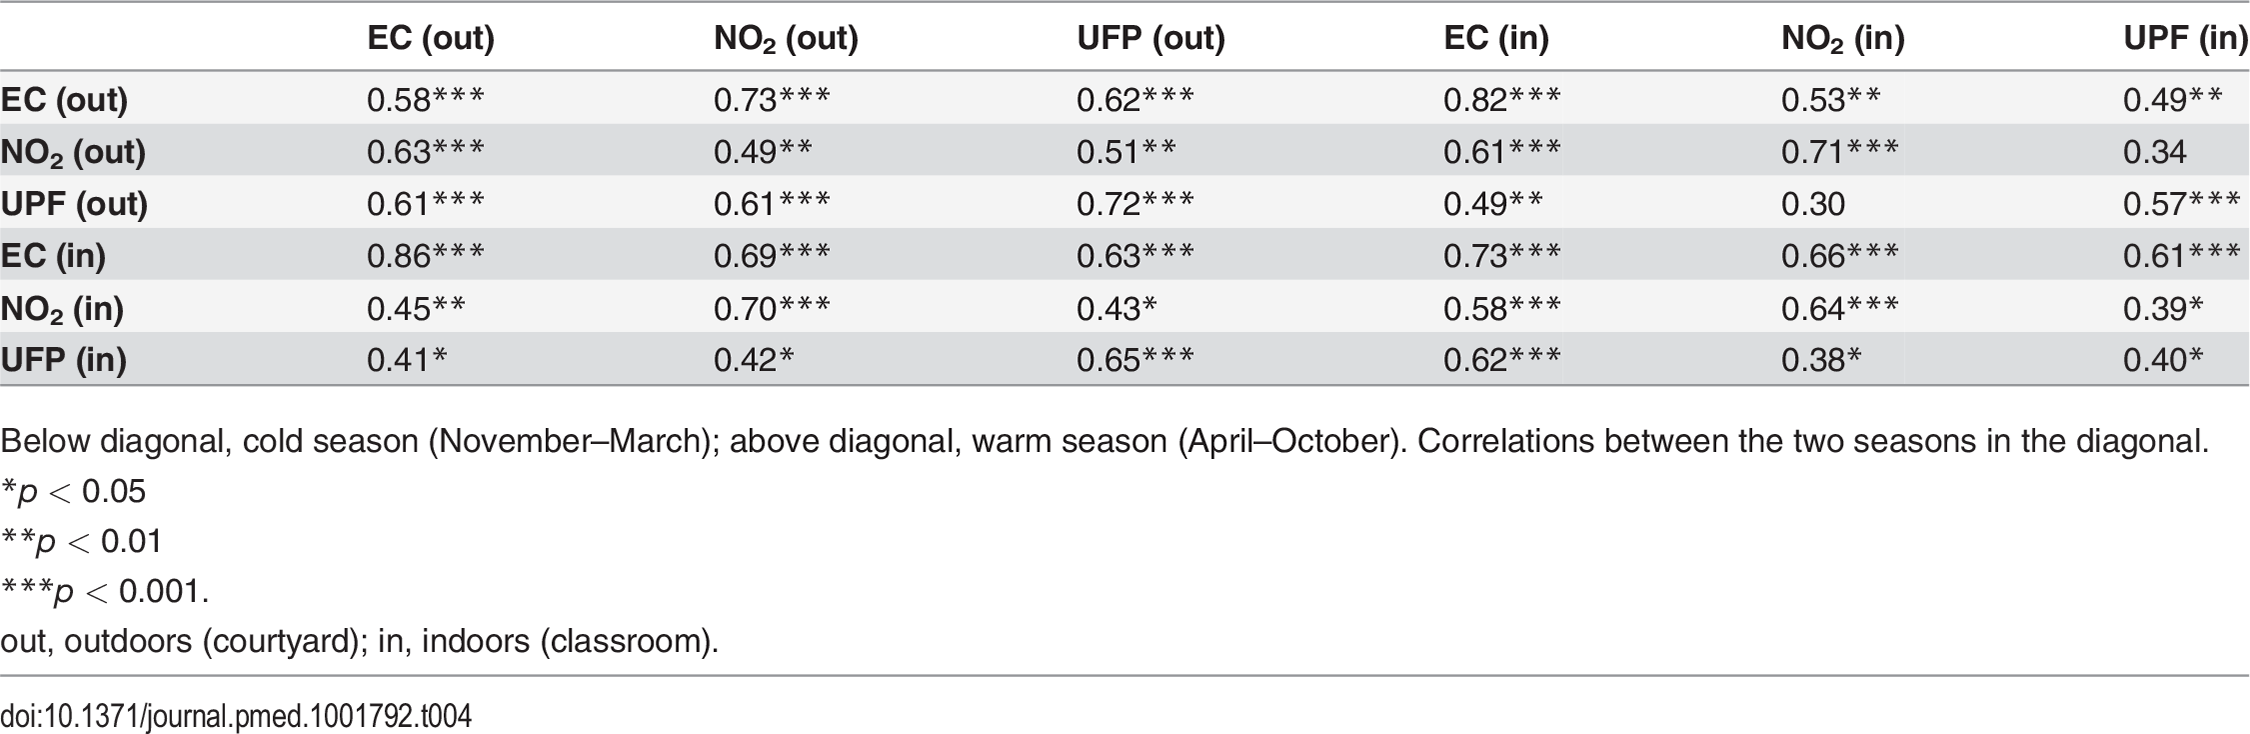 Correlation coefficients (Spearman) between air pollutants by season.